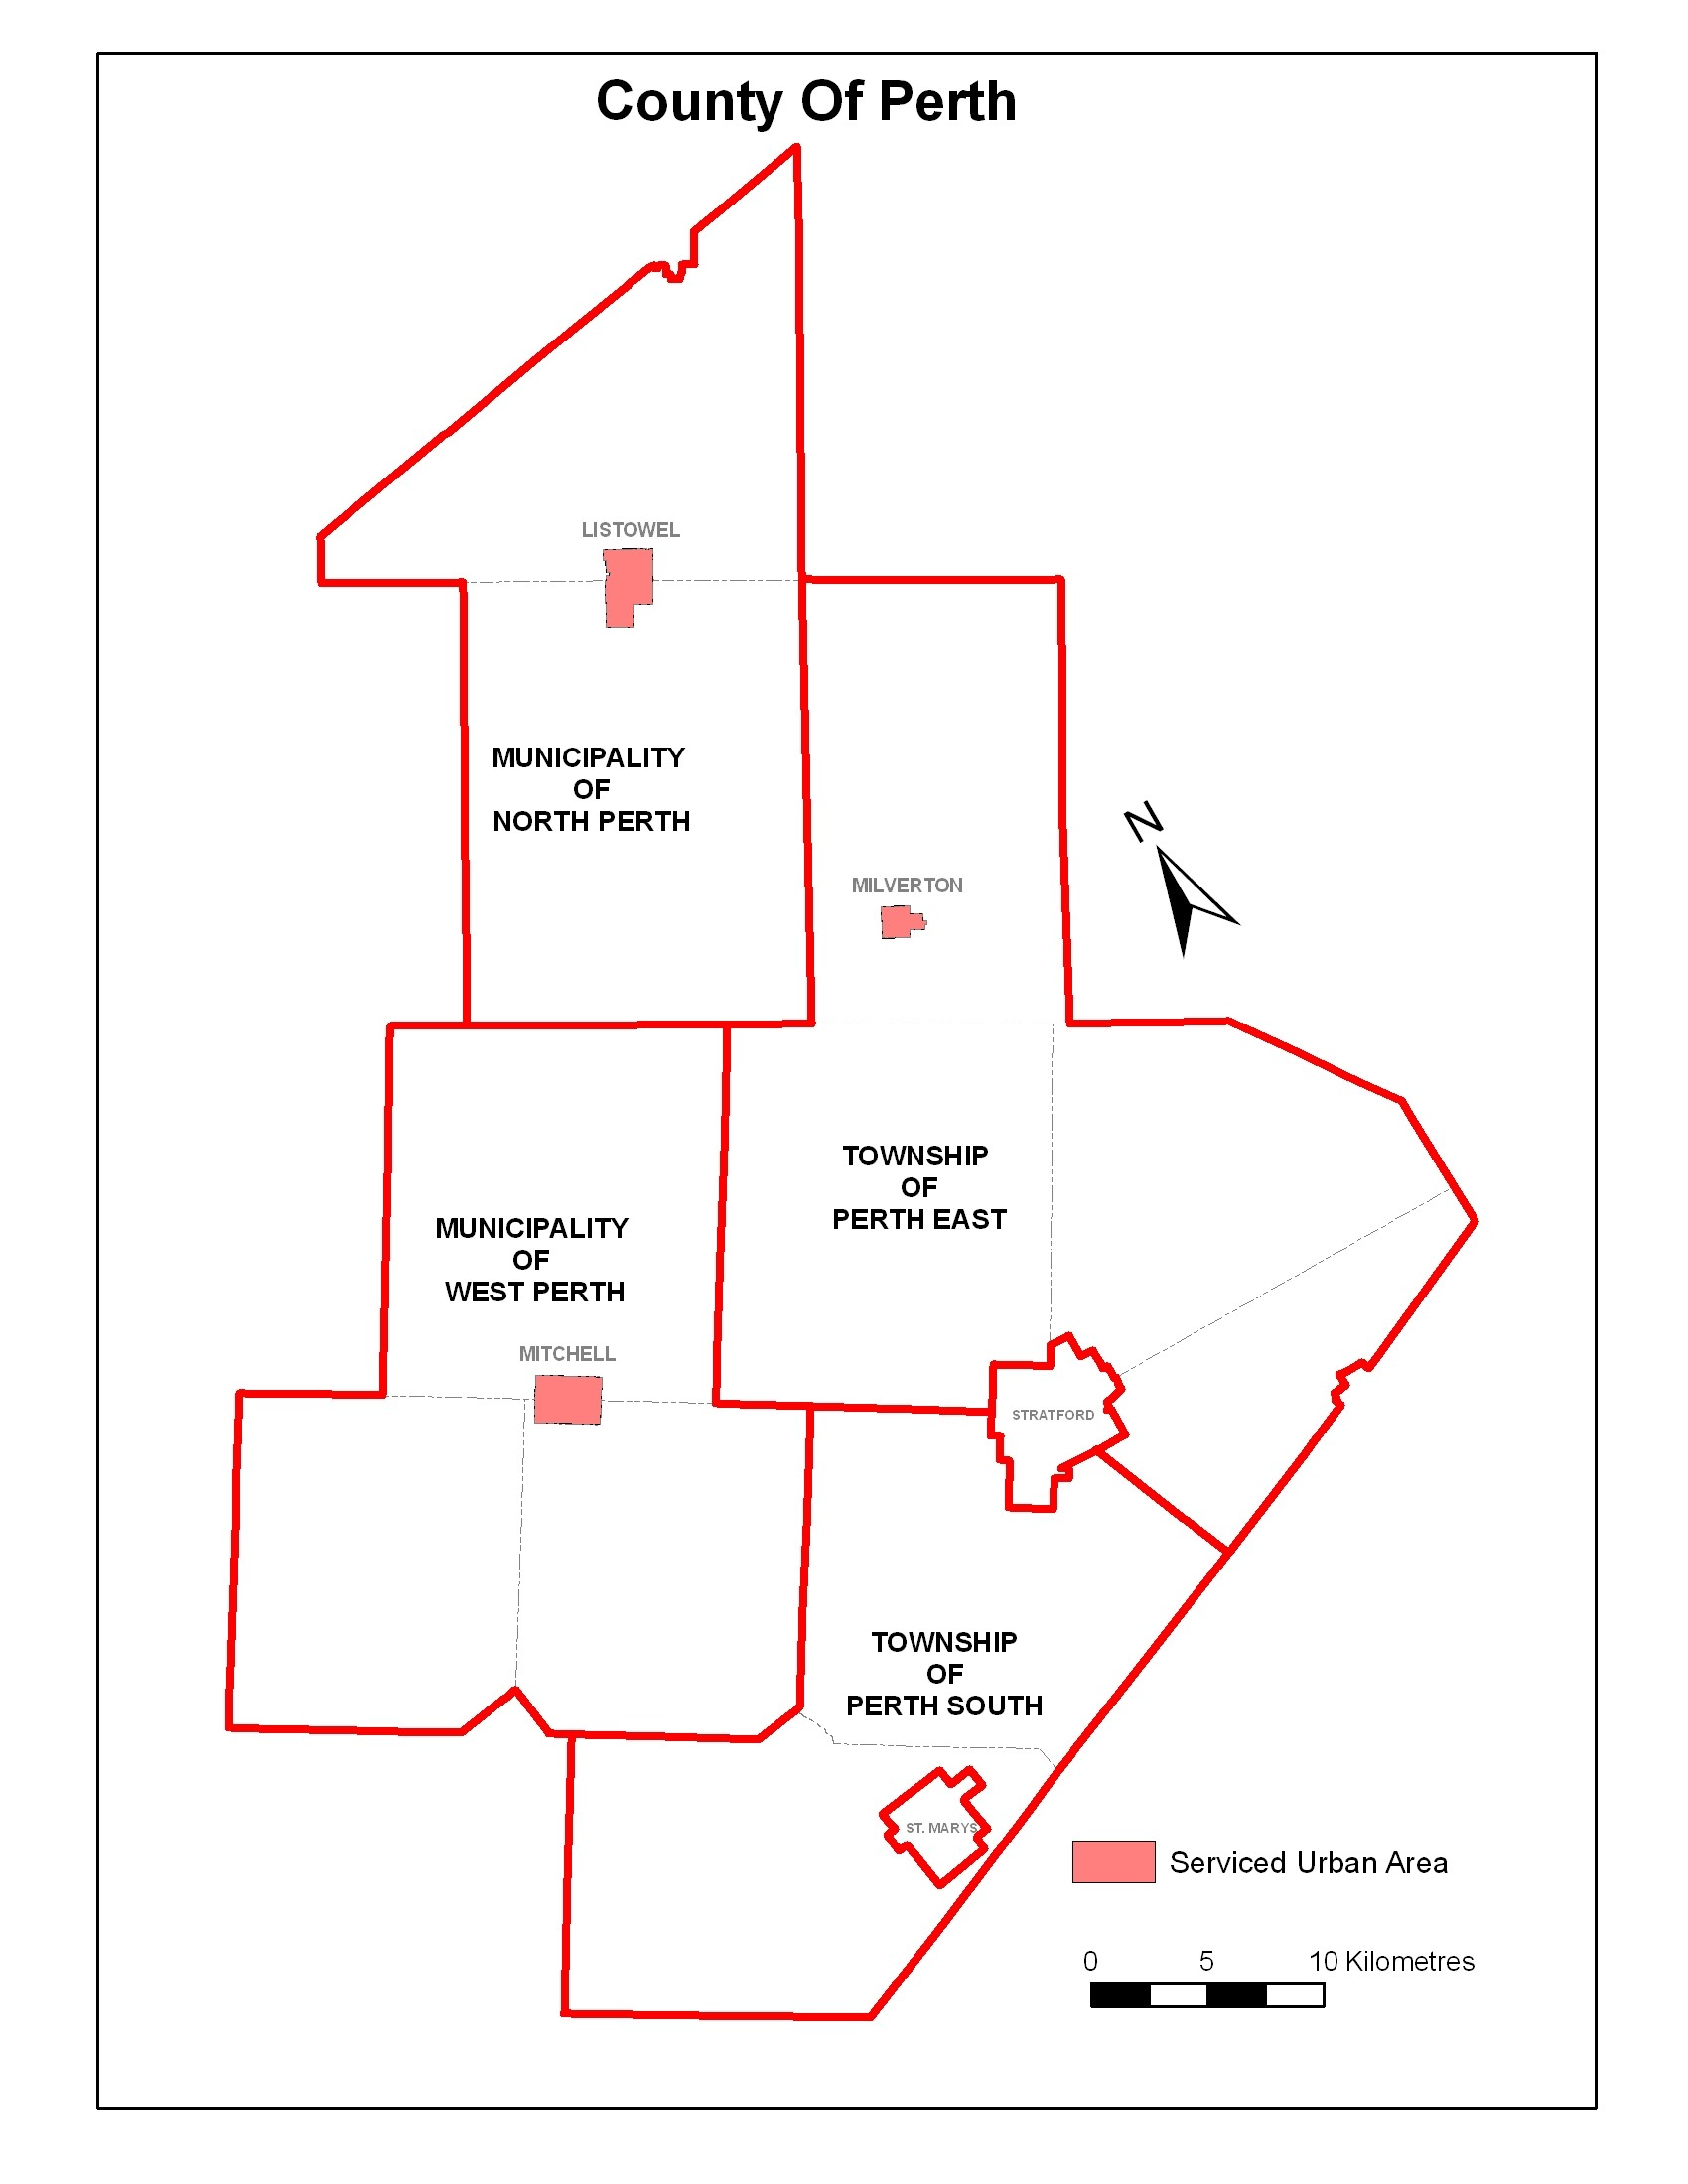 Image of Map of Perth County